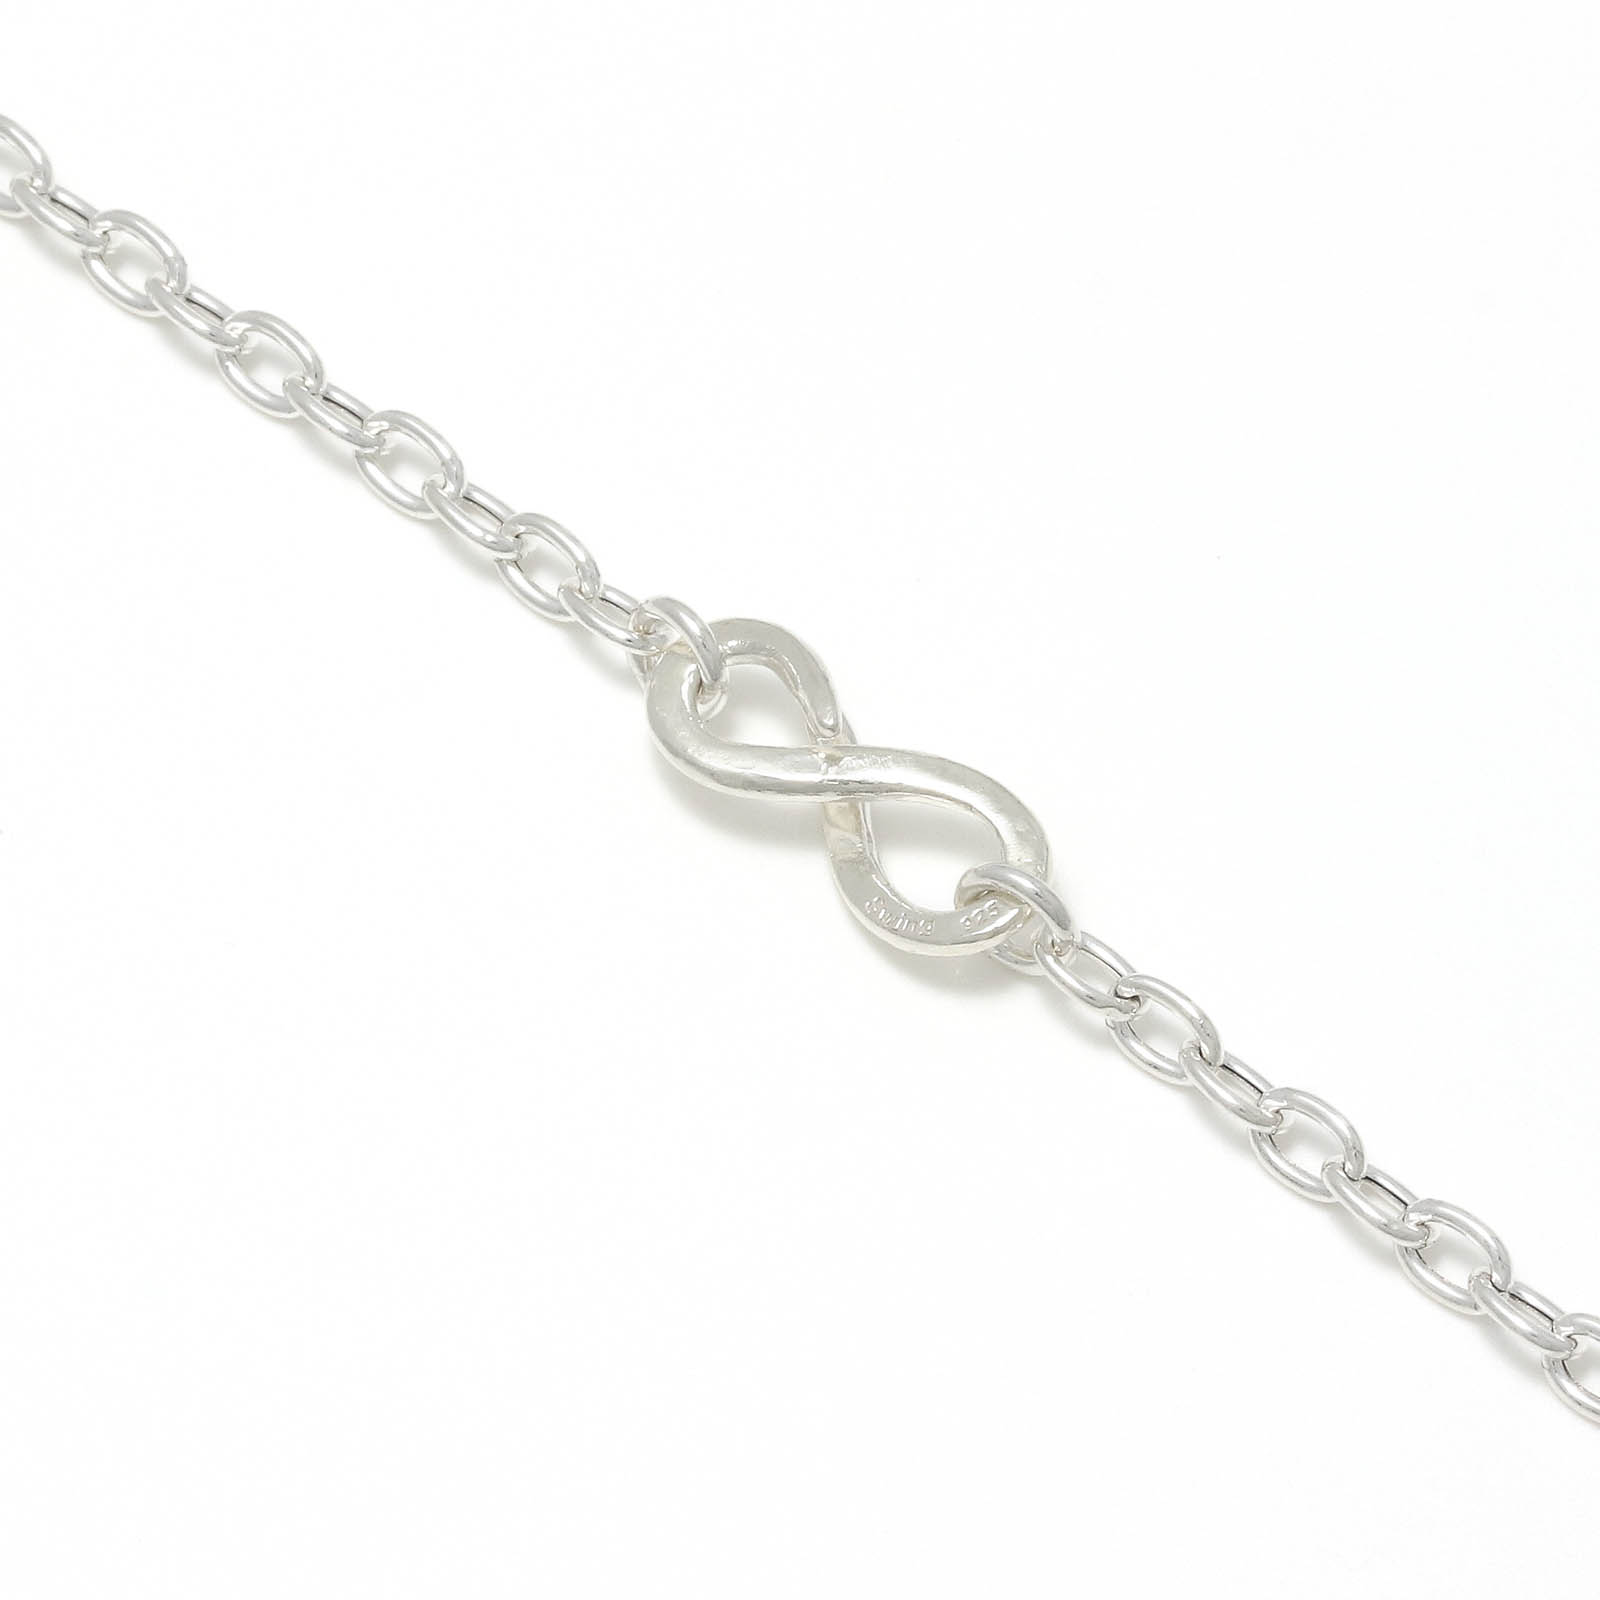 Hollow Chain Necklace - Silver